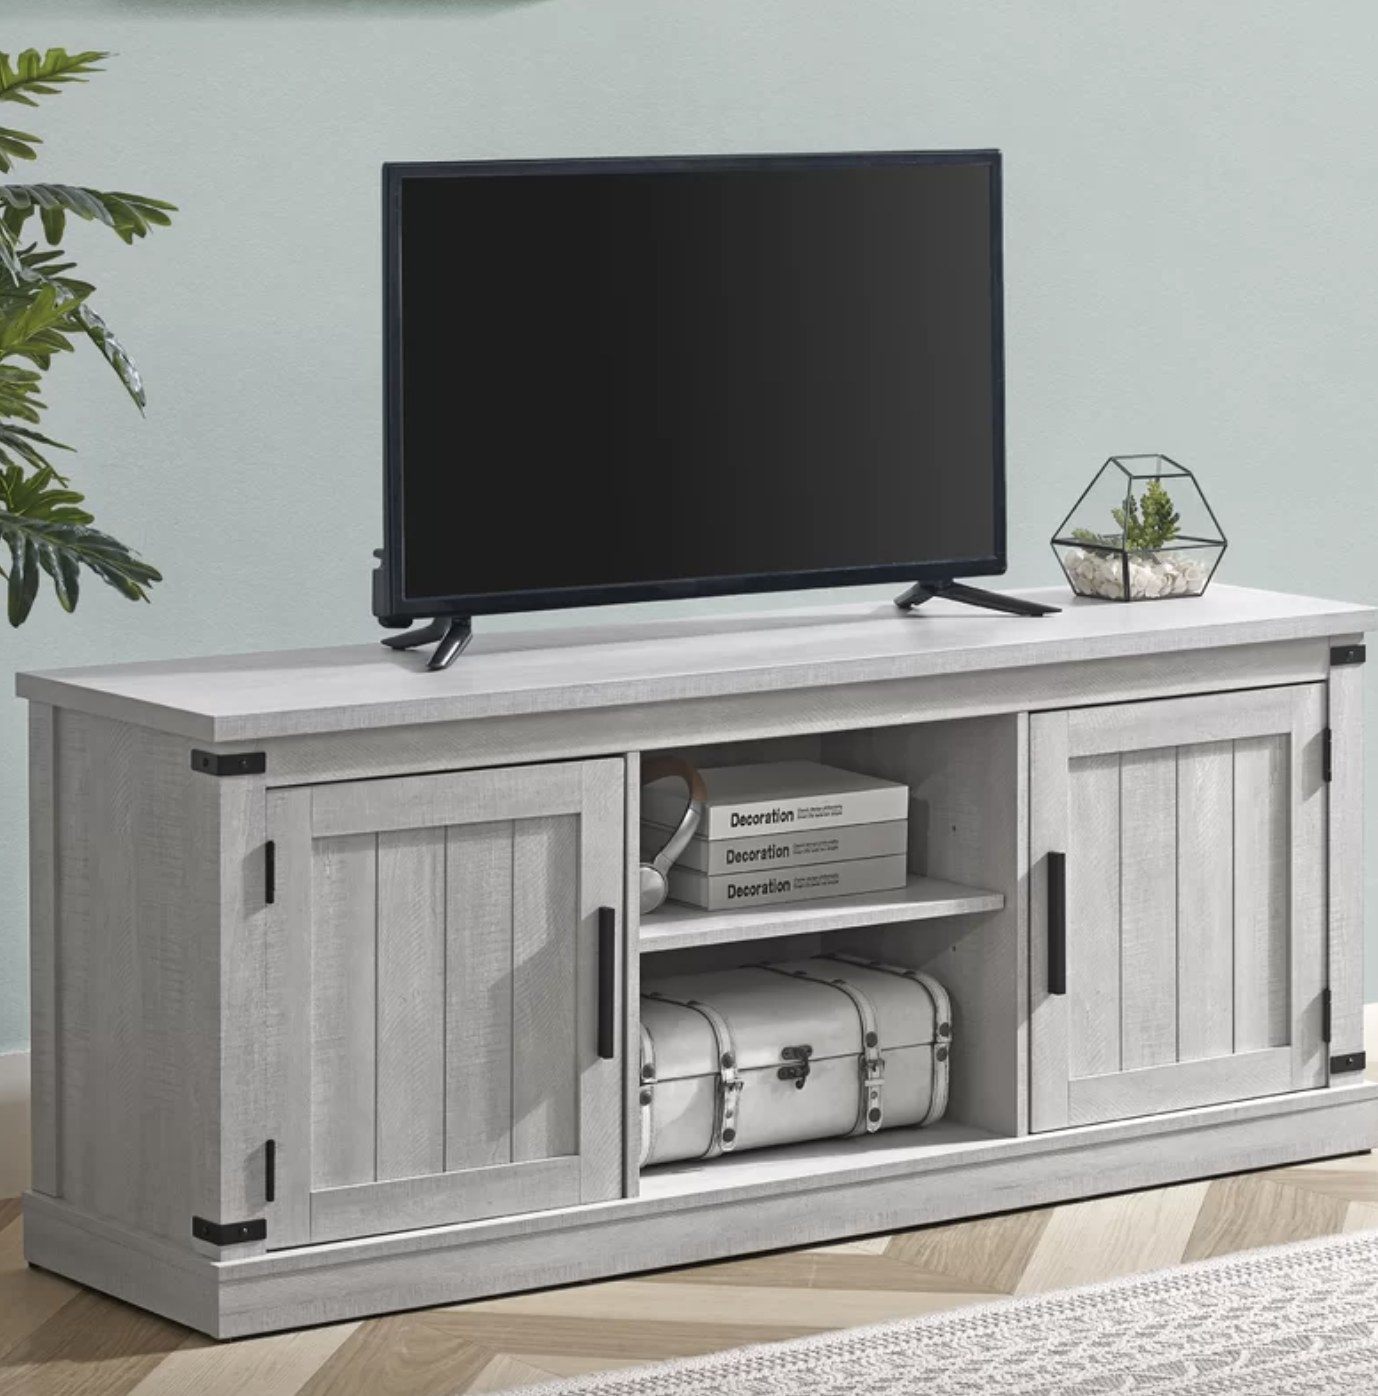 the tv stand in gray